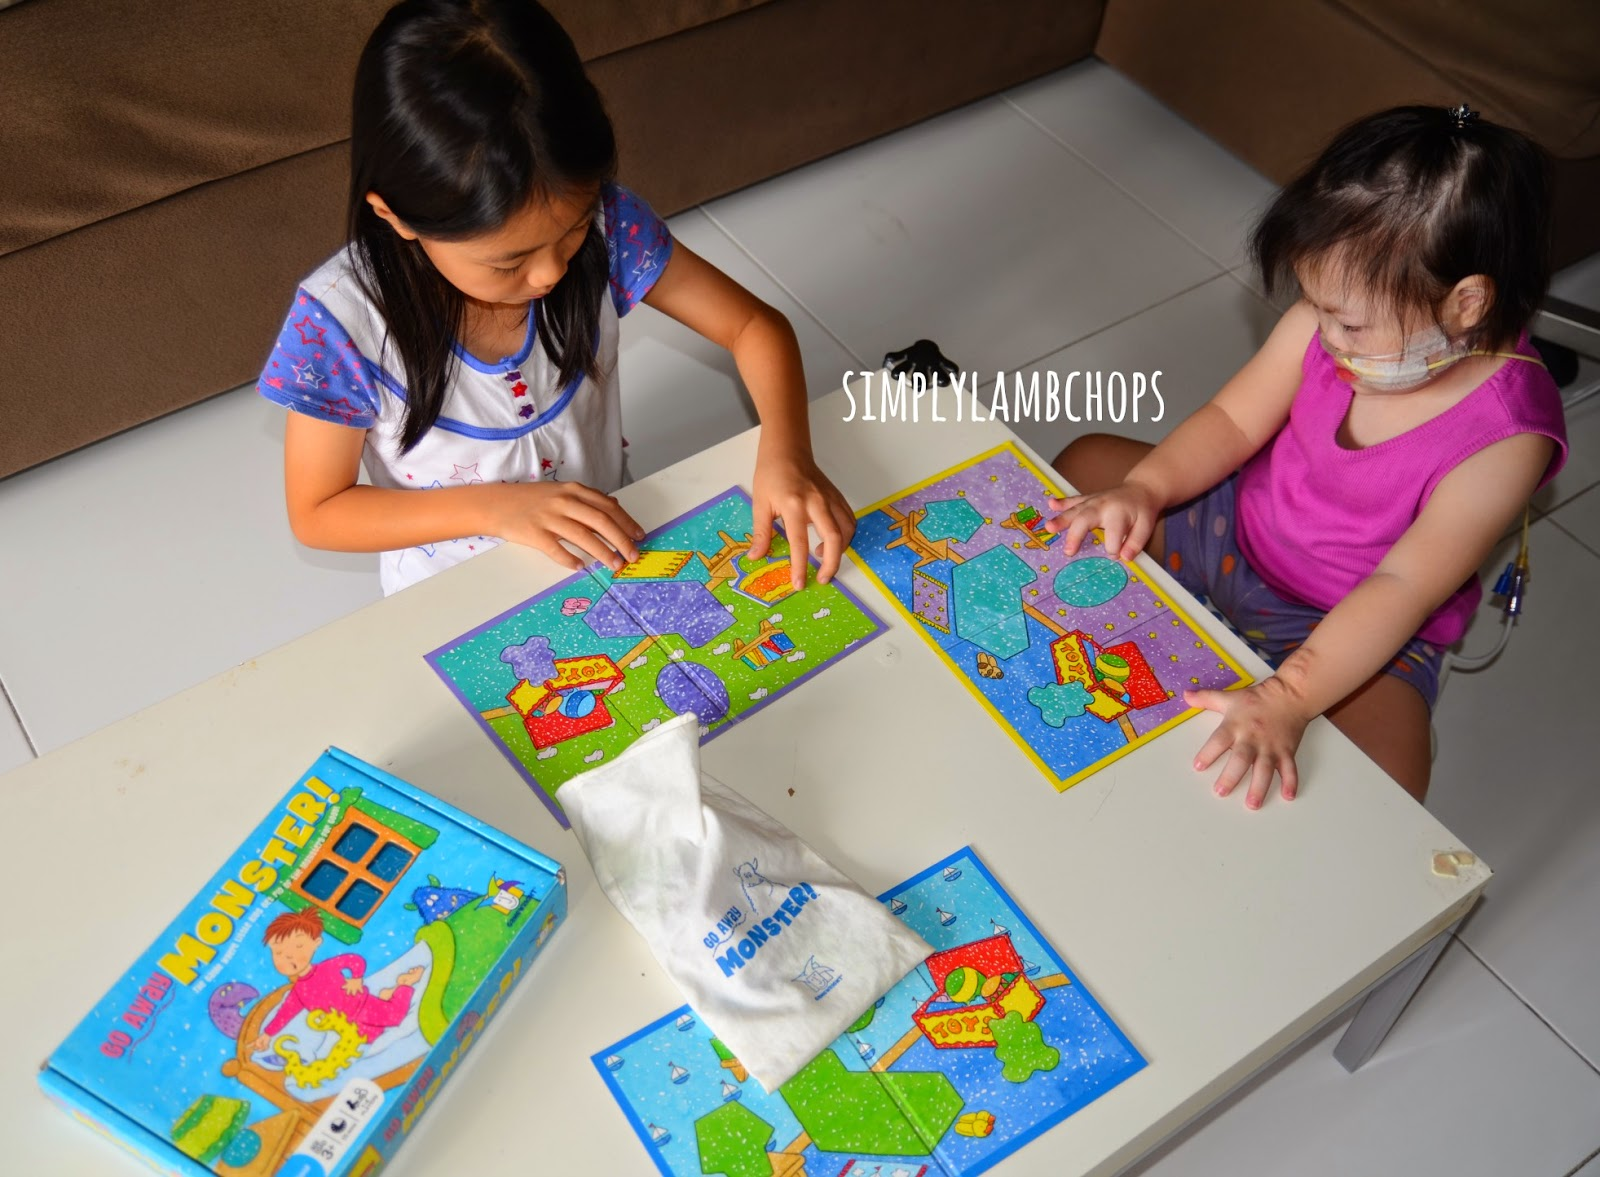 K loves Go Away Monsters board game from Simply Lambchops